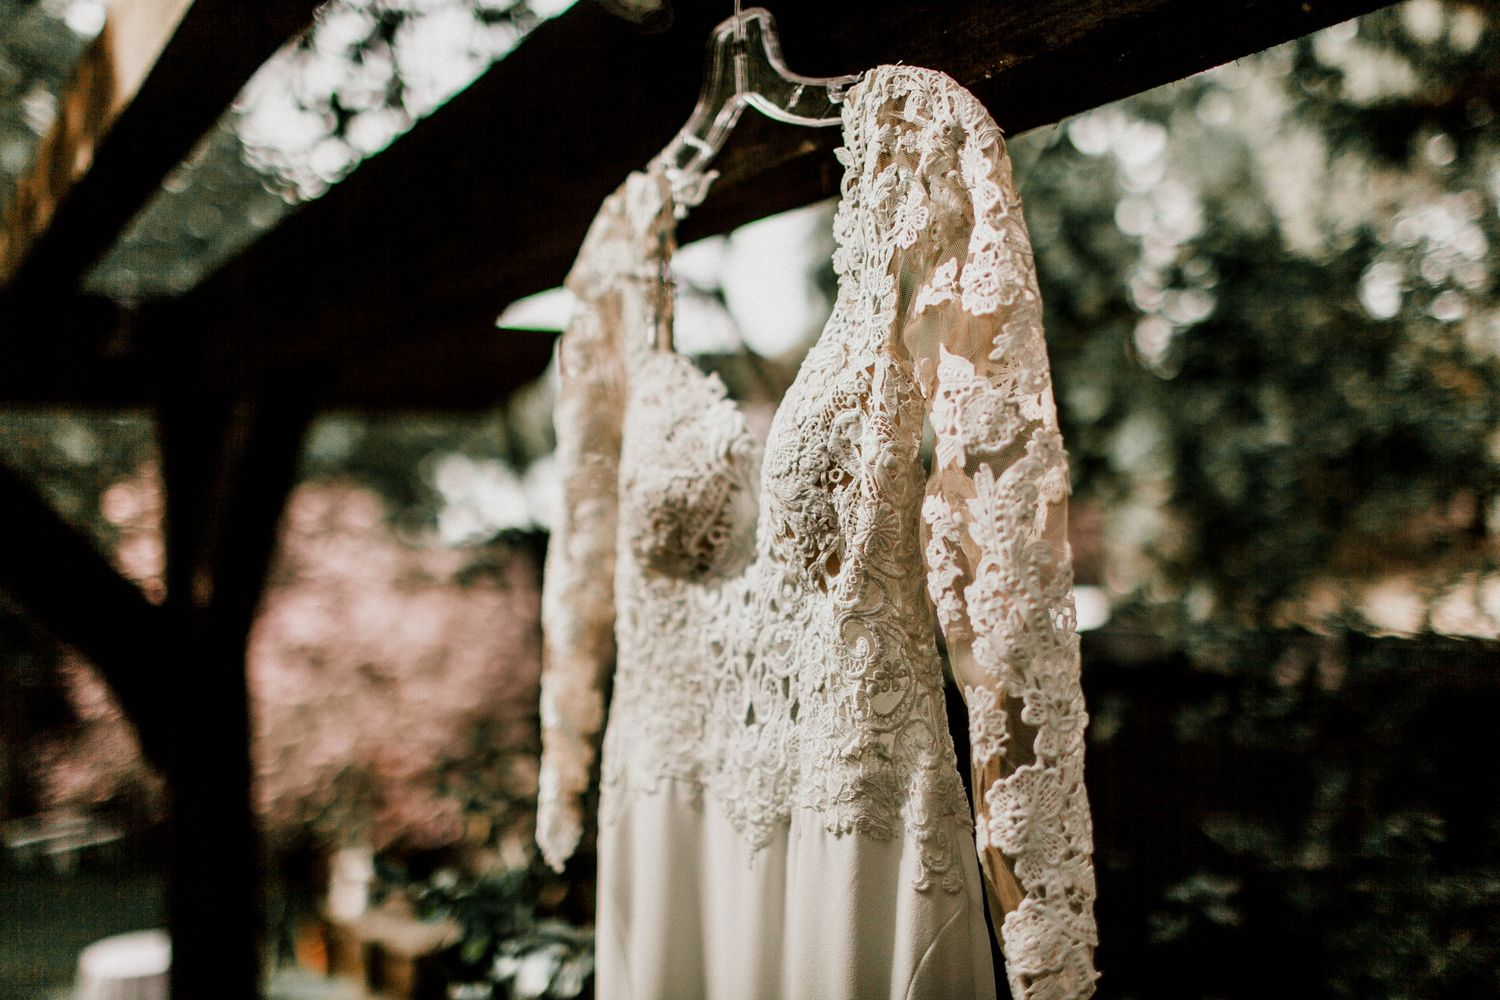 close side angle of wedding dress hanging